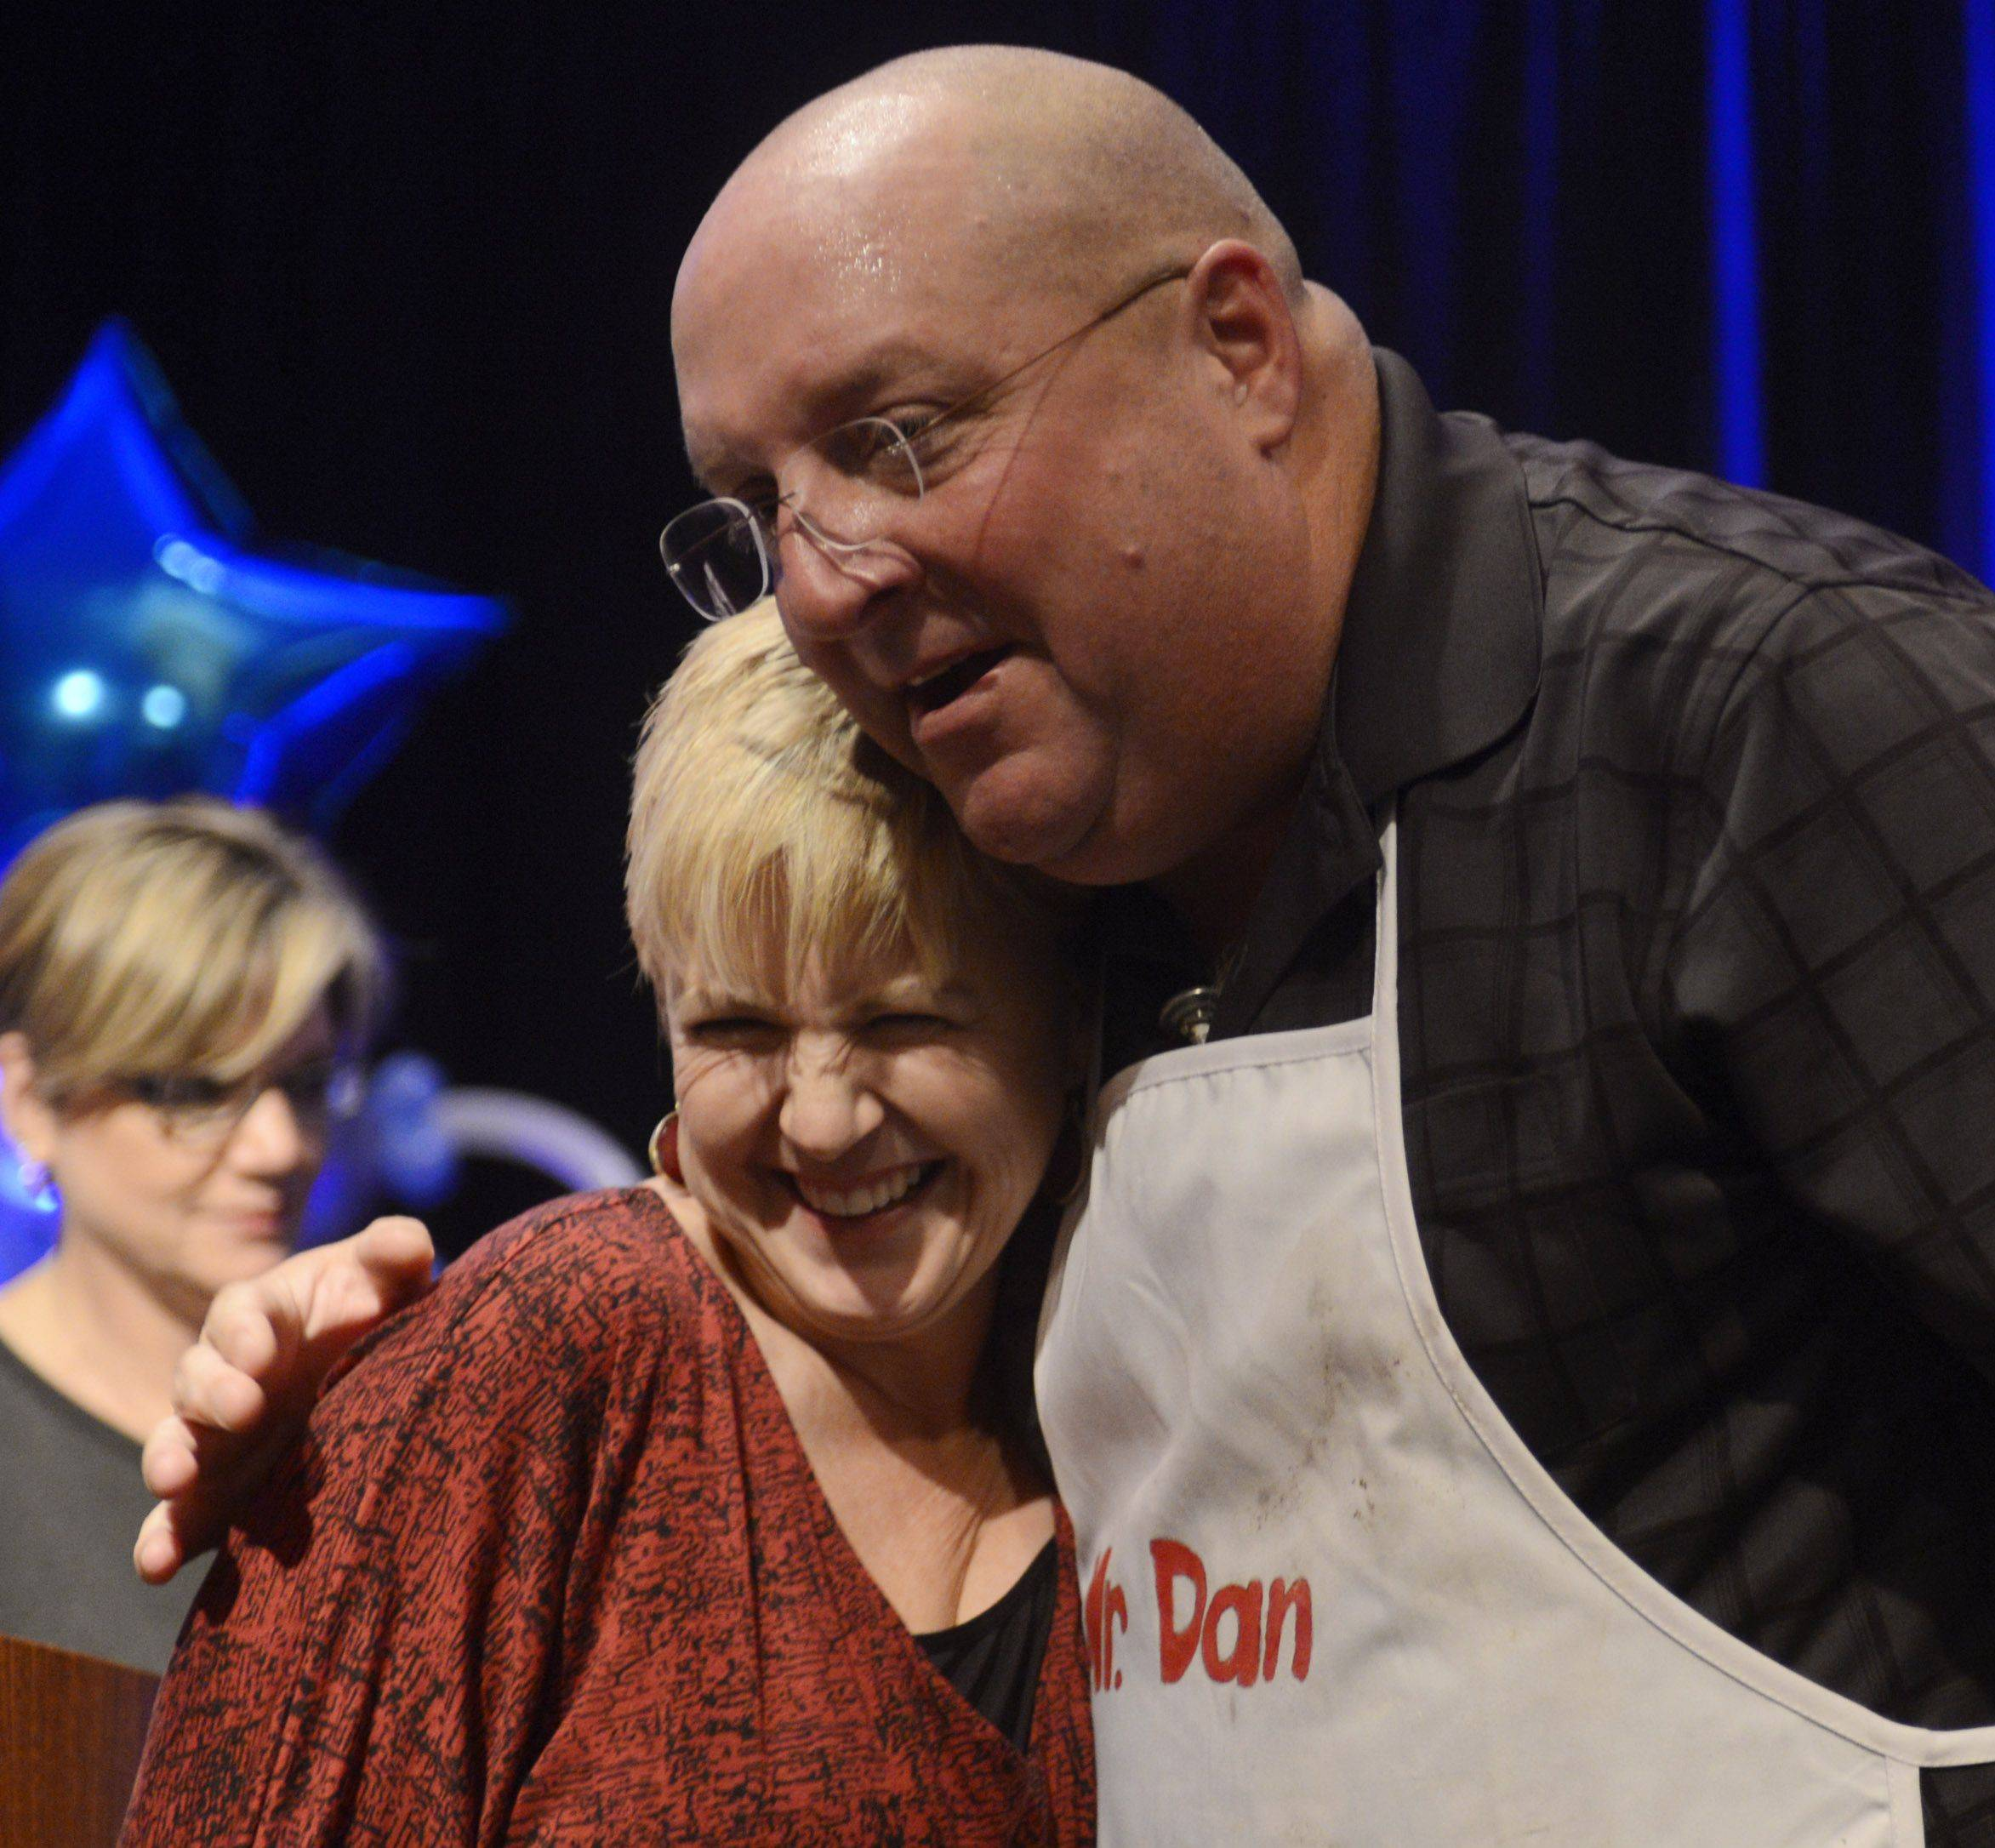 JOE LEWNARD/jlewnard@dailyherald.com Dan Rich of Elgin hugs Daily Herald Food Editor Deb Pankey after being announced the winner of the Daily Herald Cook of the Week Cookoff finals, held at the Hyatt Regency Schaumburg Wednesday.